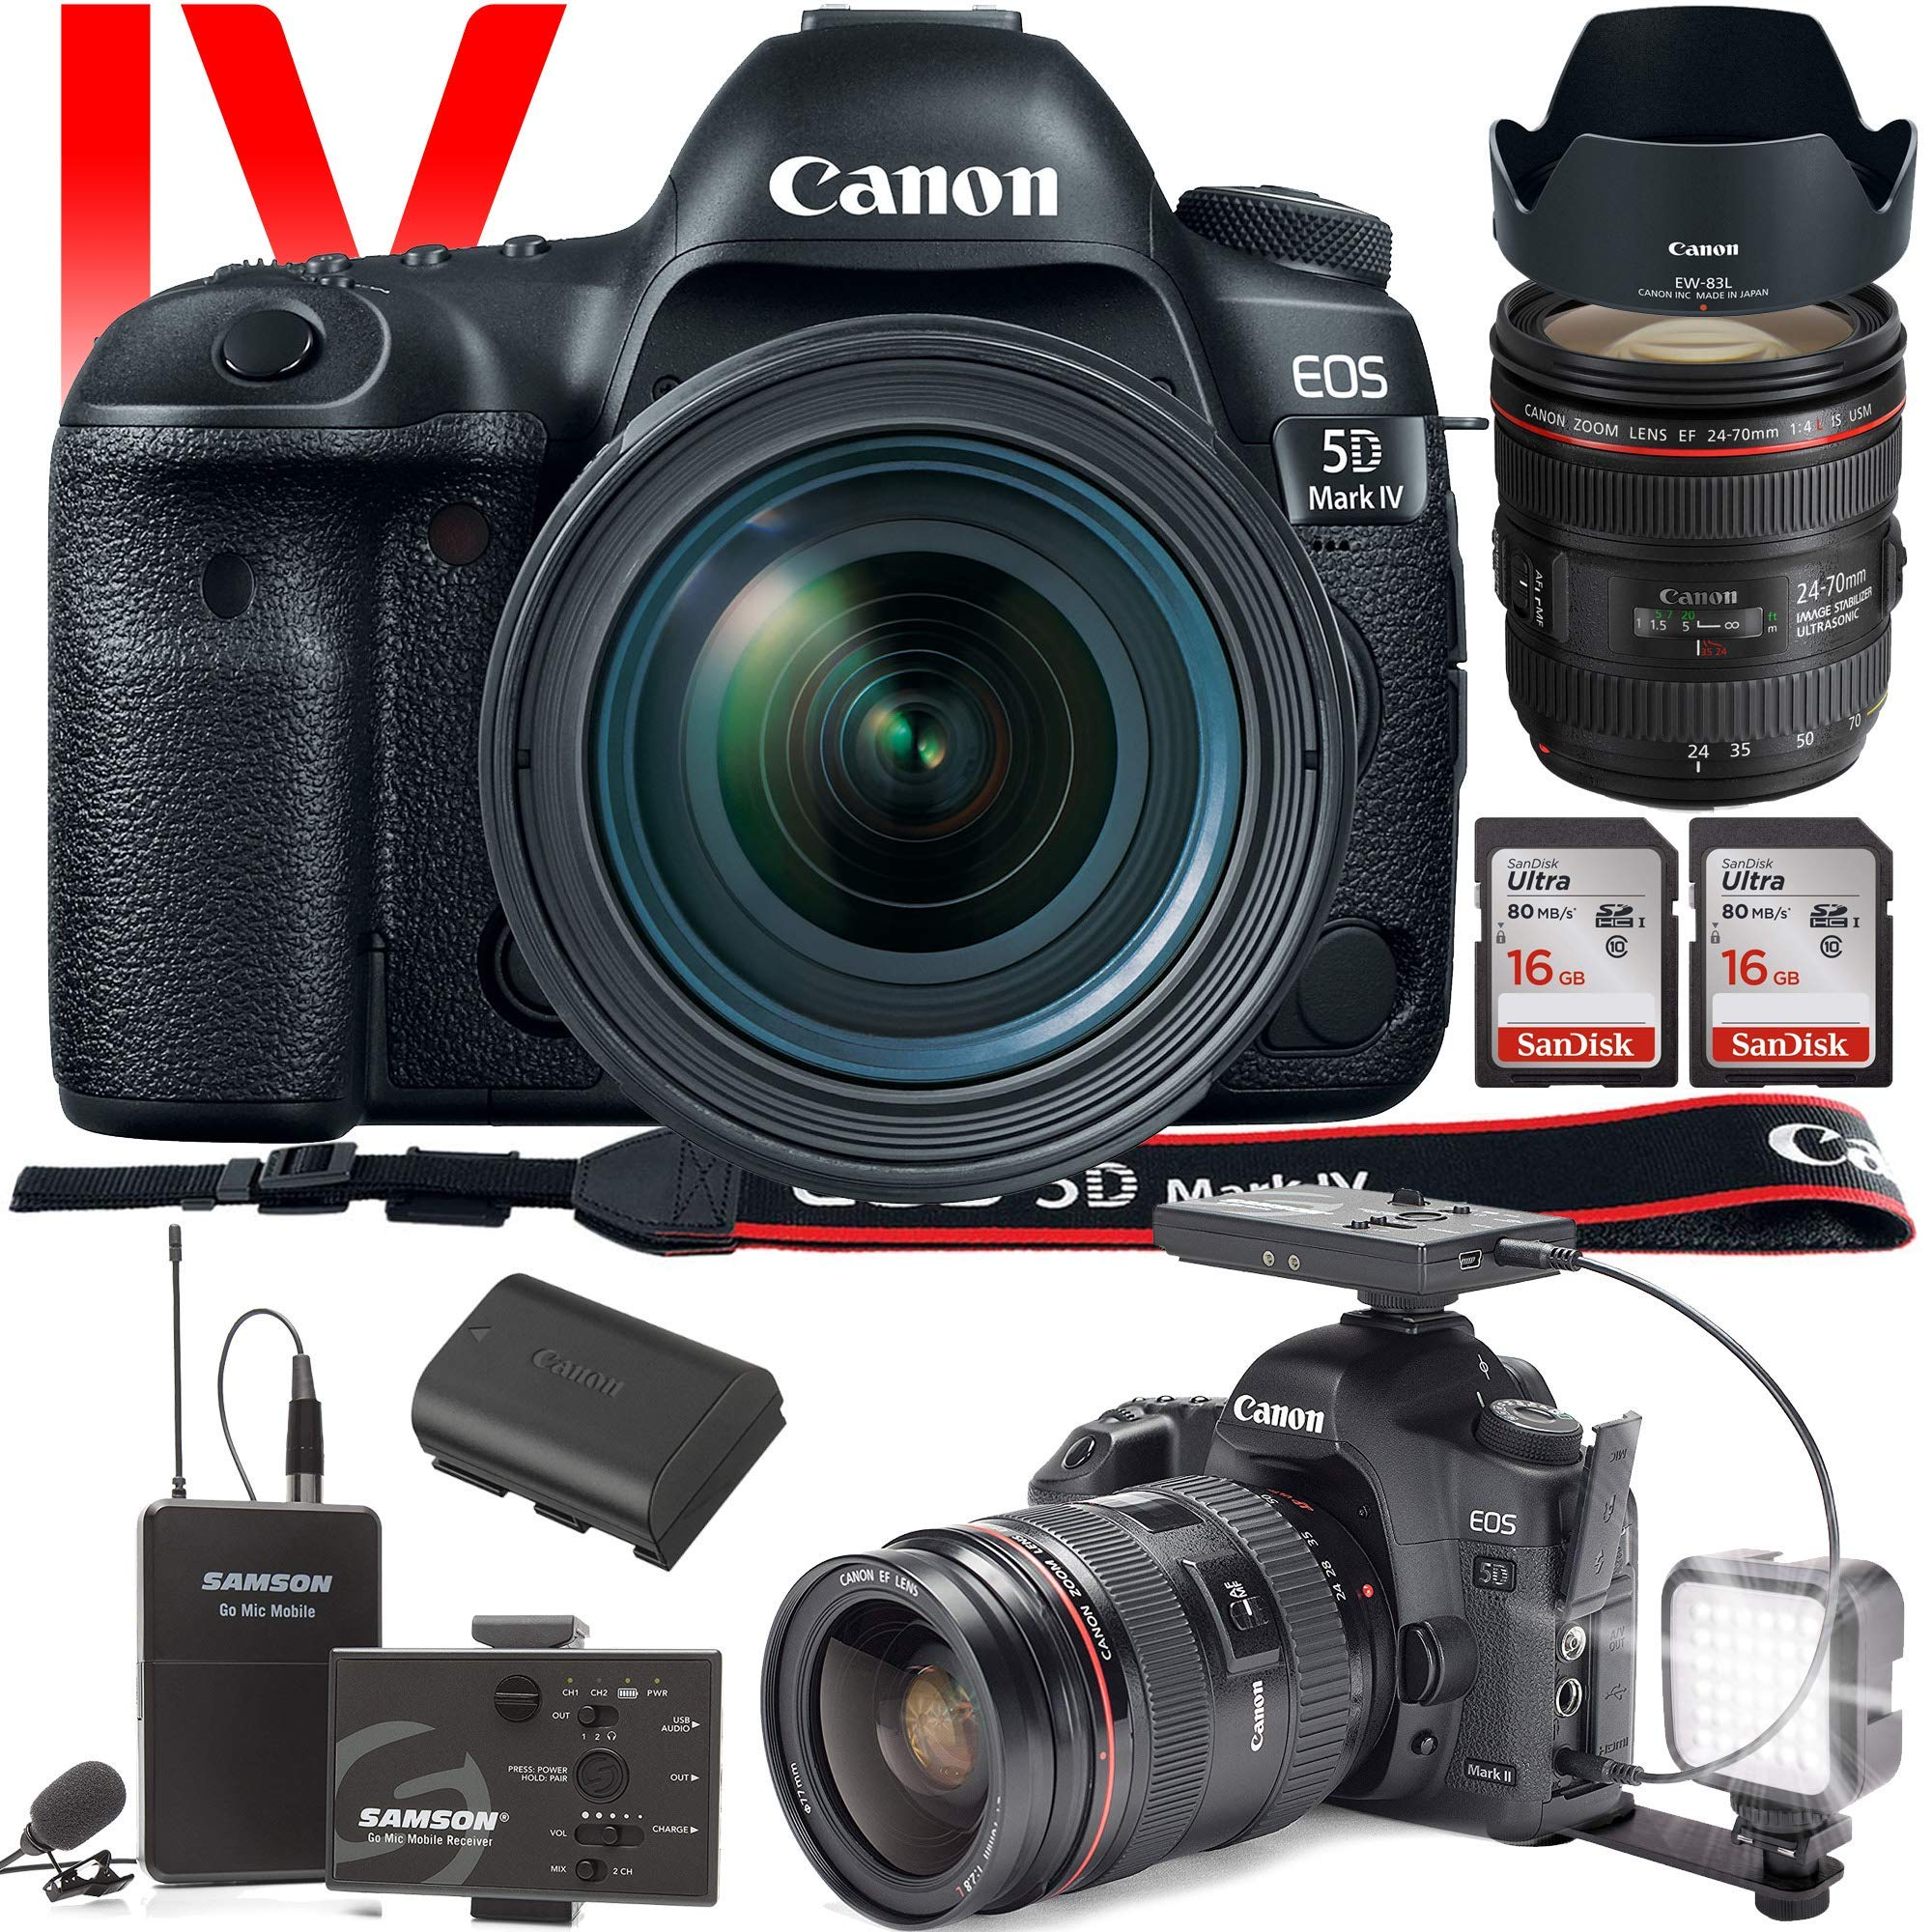 Canon EOS 5D Mark IV DSLR Camera with 24-70mm f/4L Lens (International Version) - Wireless Microphone System for Vlog and Interviews